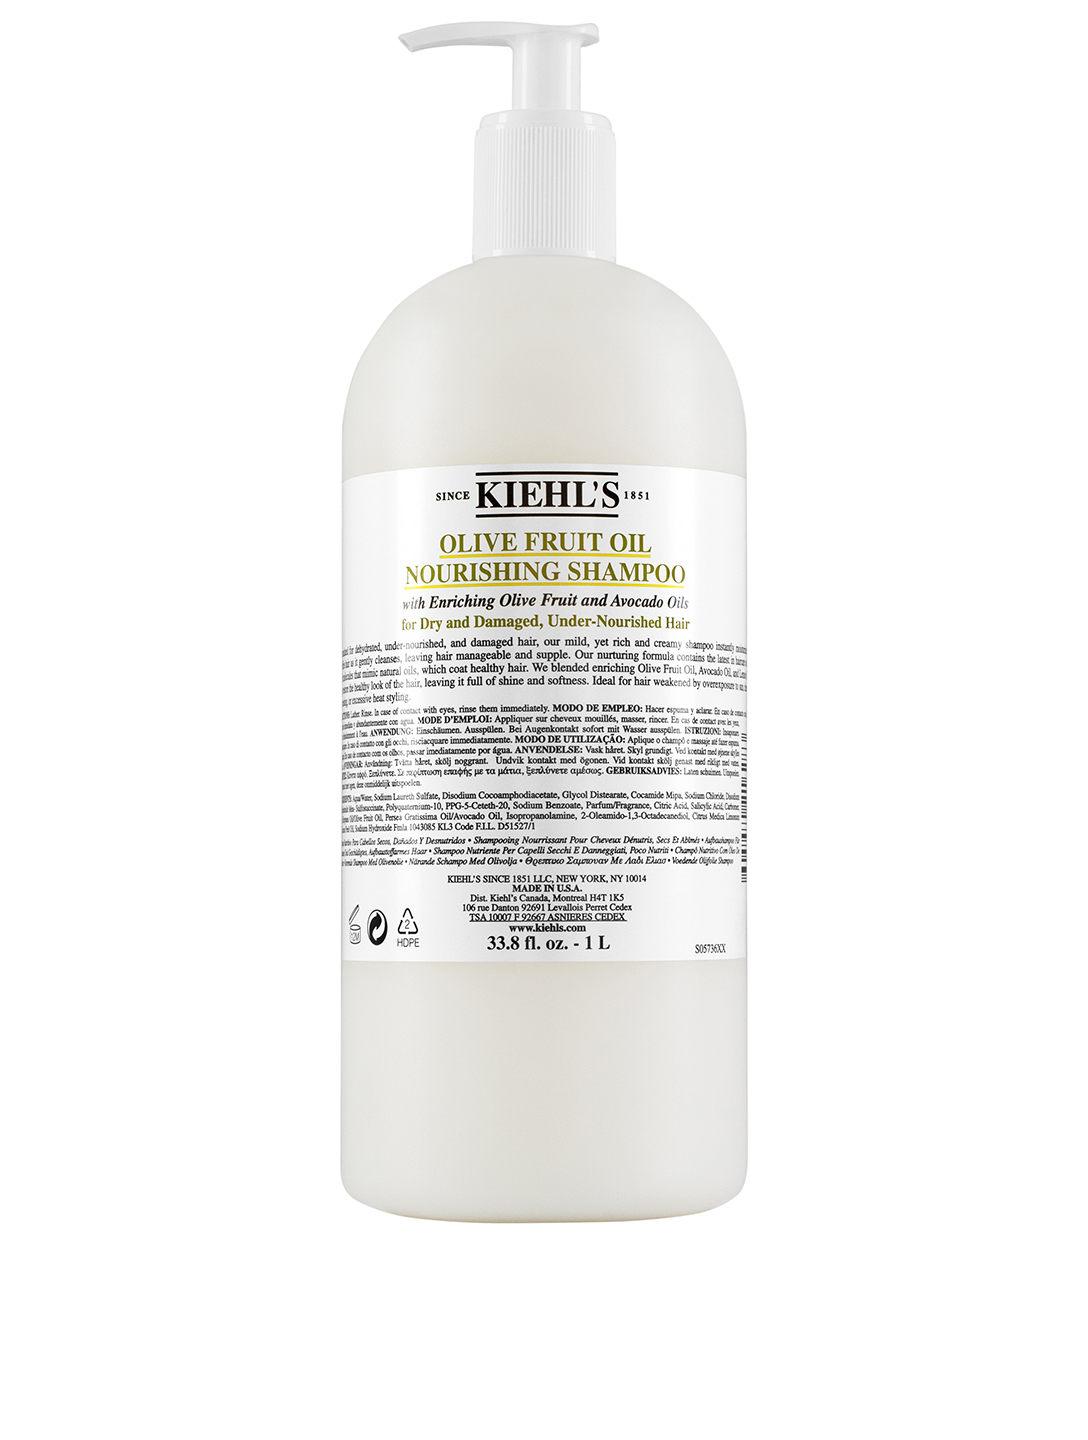 KIEHL'S Olive Fruit Oil Nourishing Shampoo Beauty